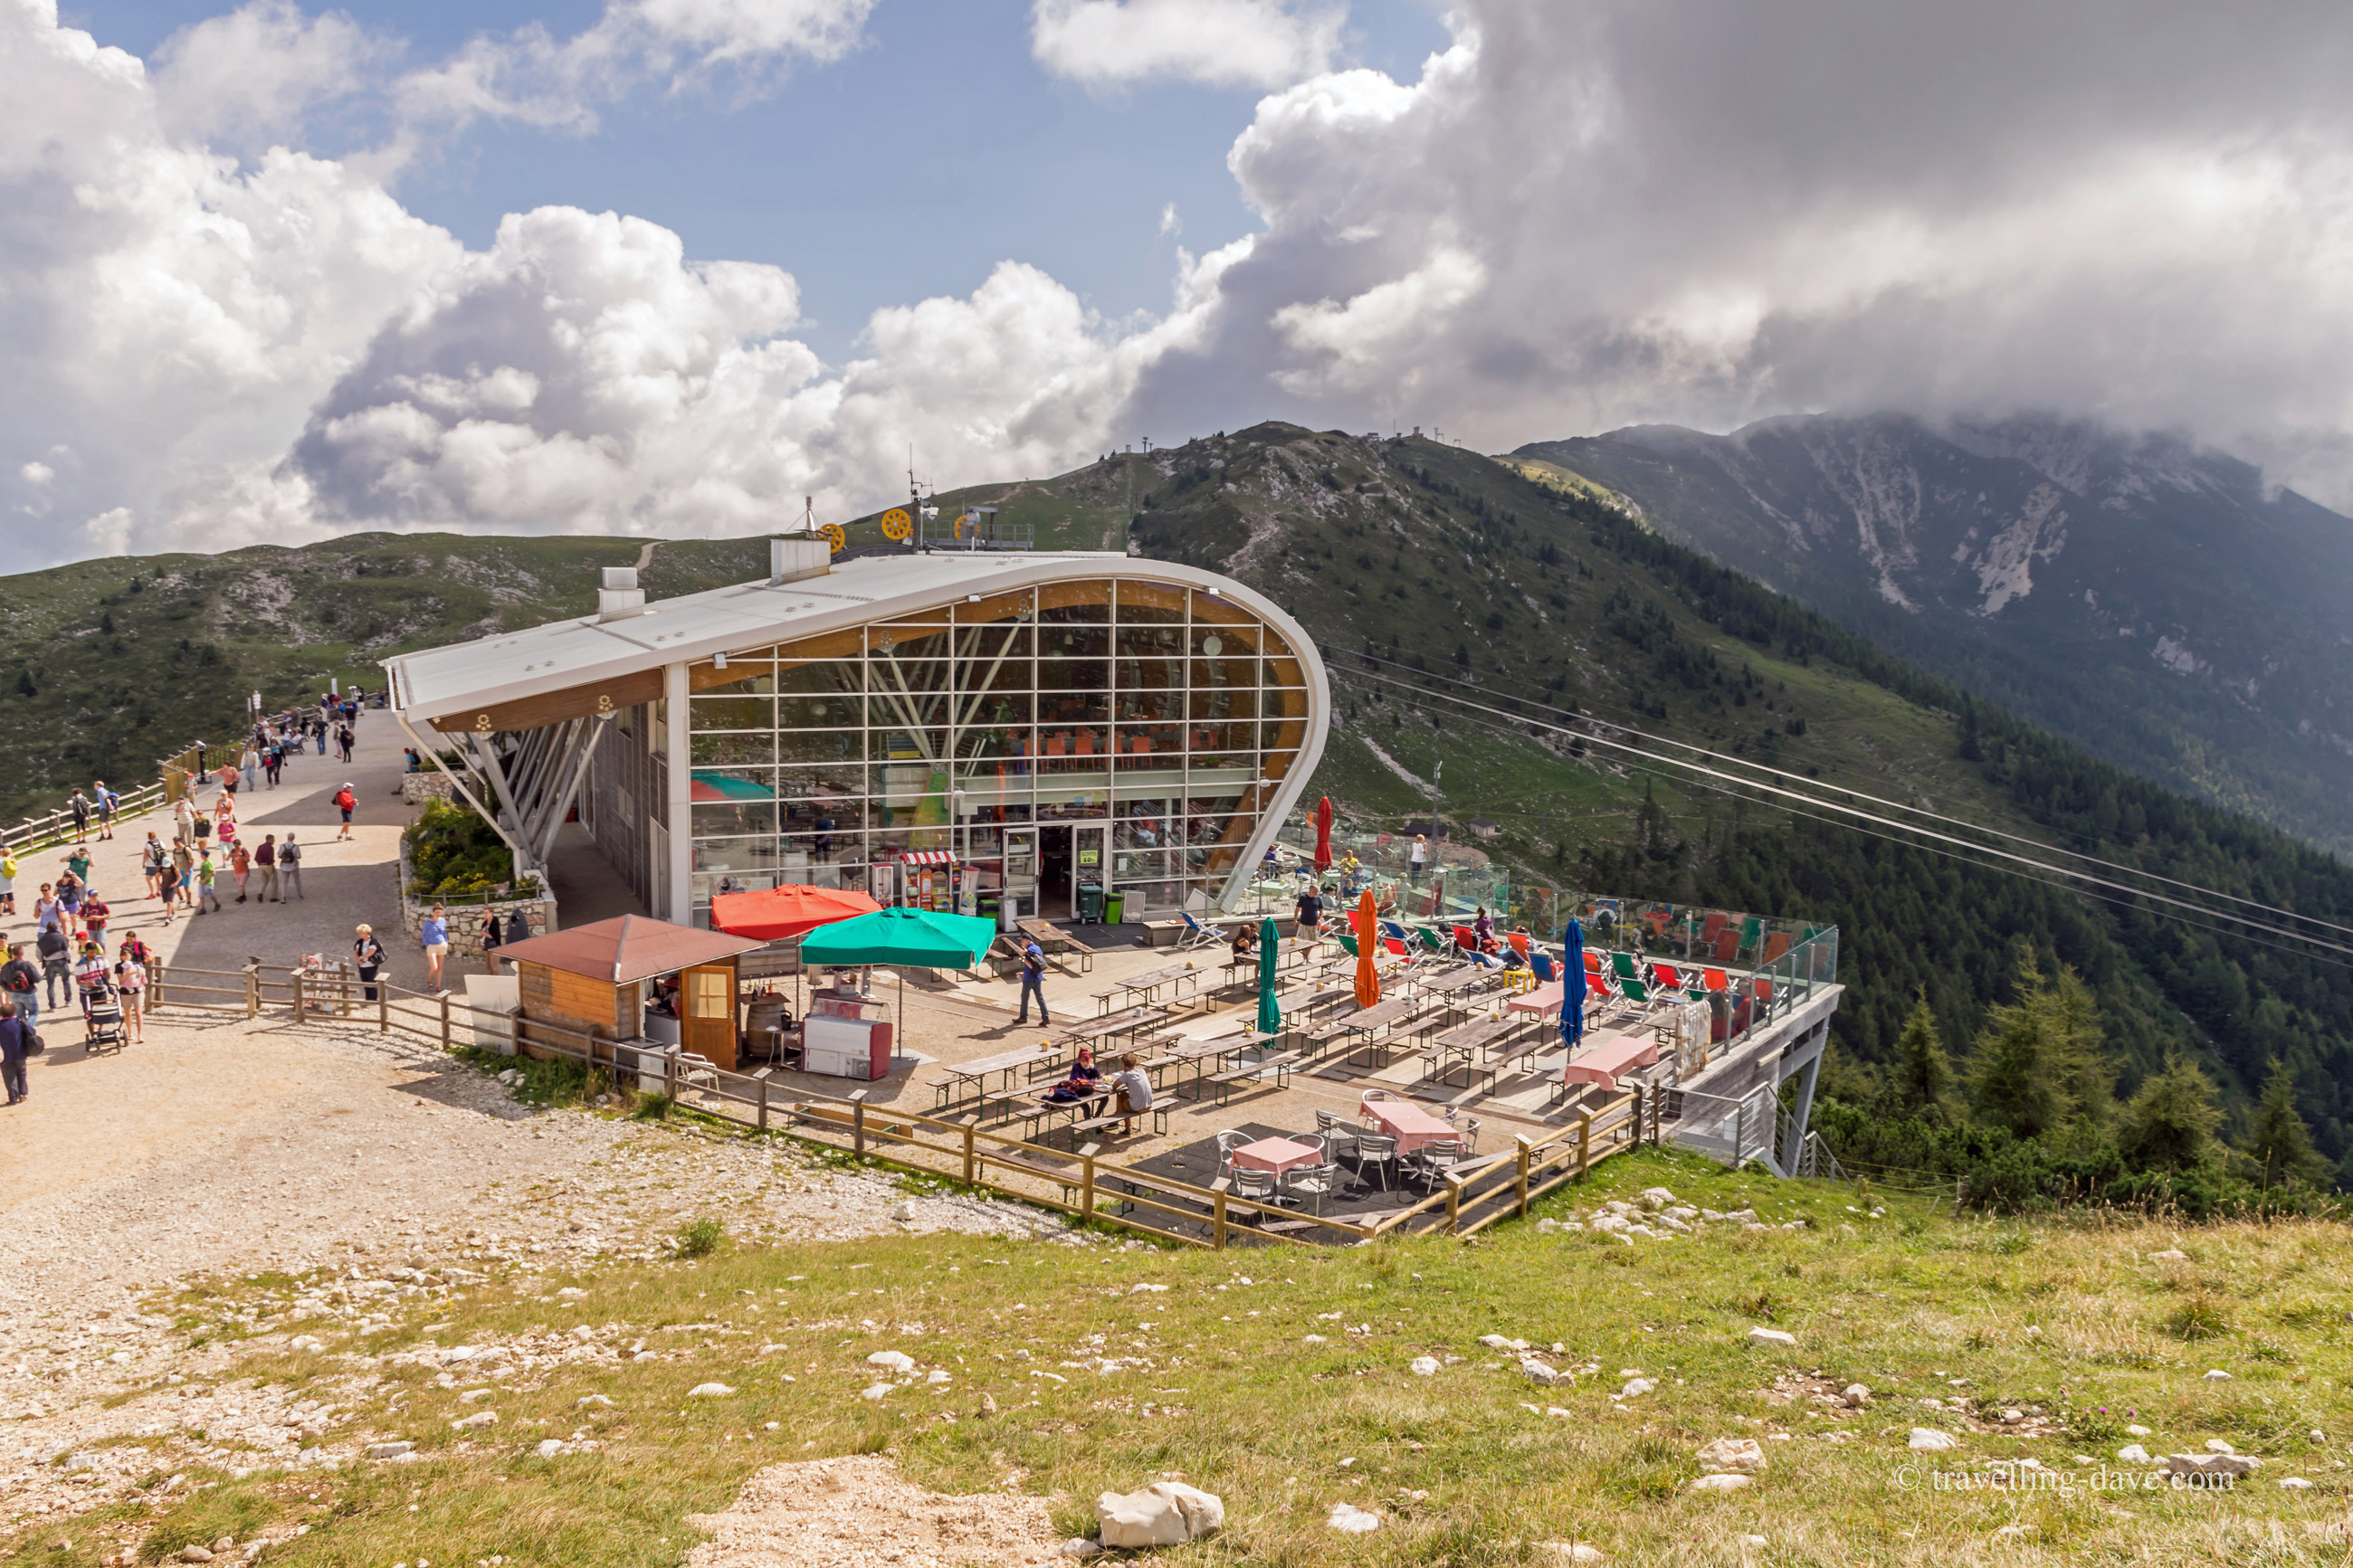 View of the upper station of Monte Baldo cable car